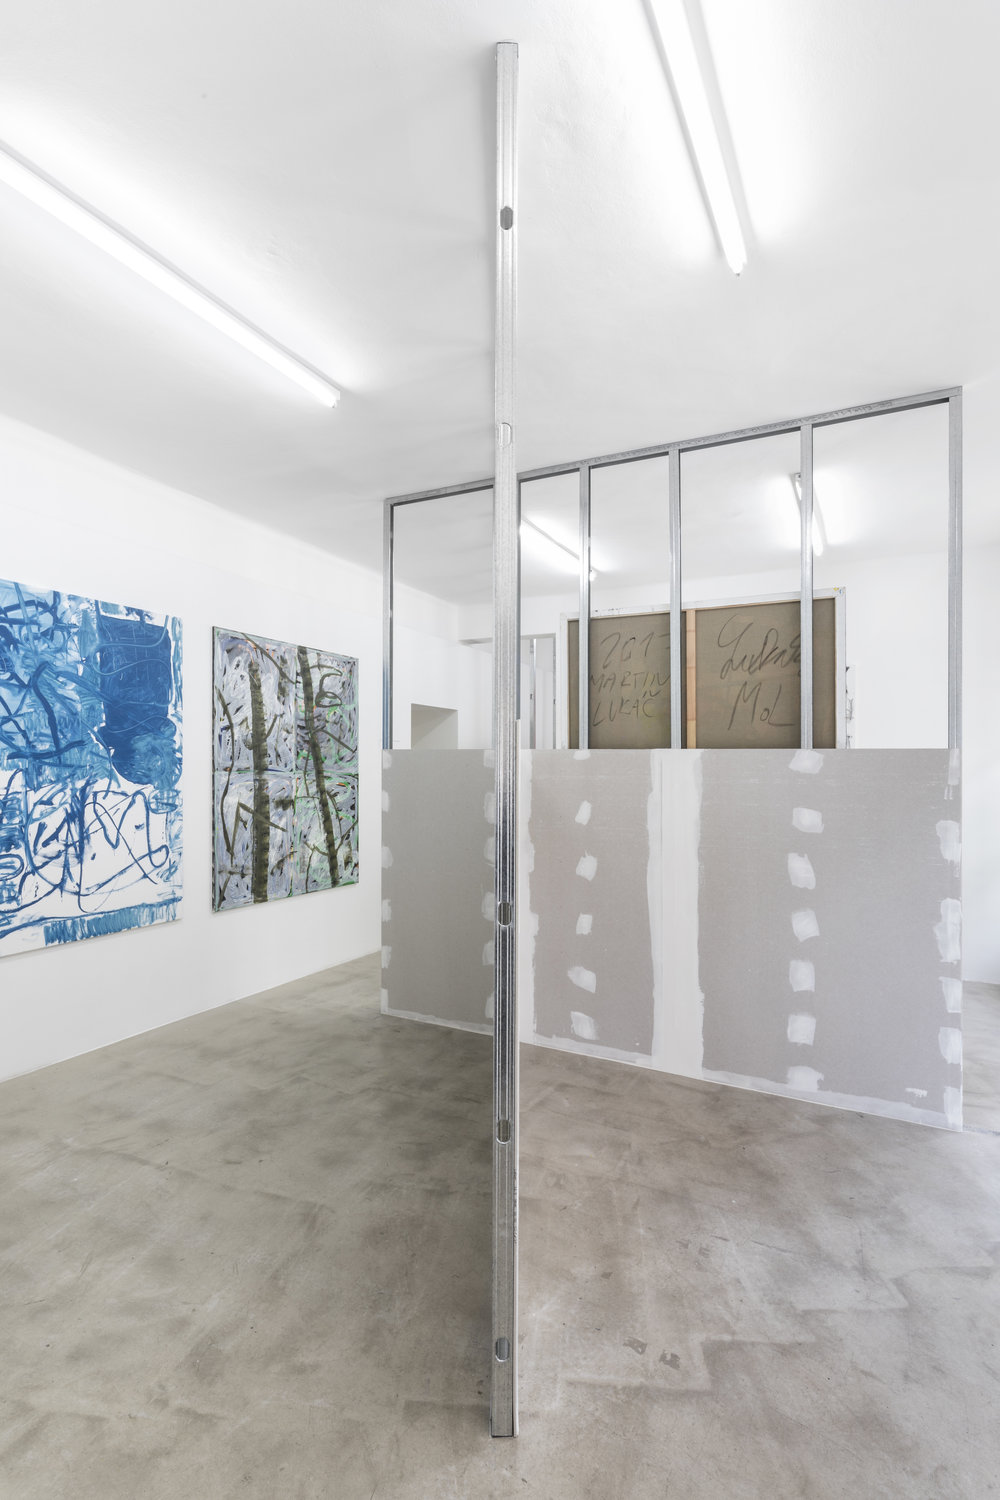 Martin Lukáč and Anu Vahtra at Lucie Drdova Gallery curated by Piotr Sikora